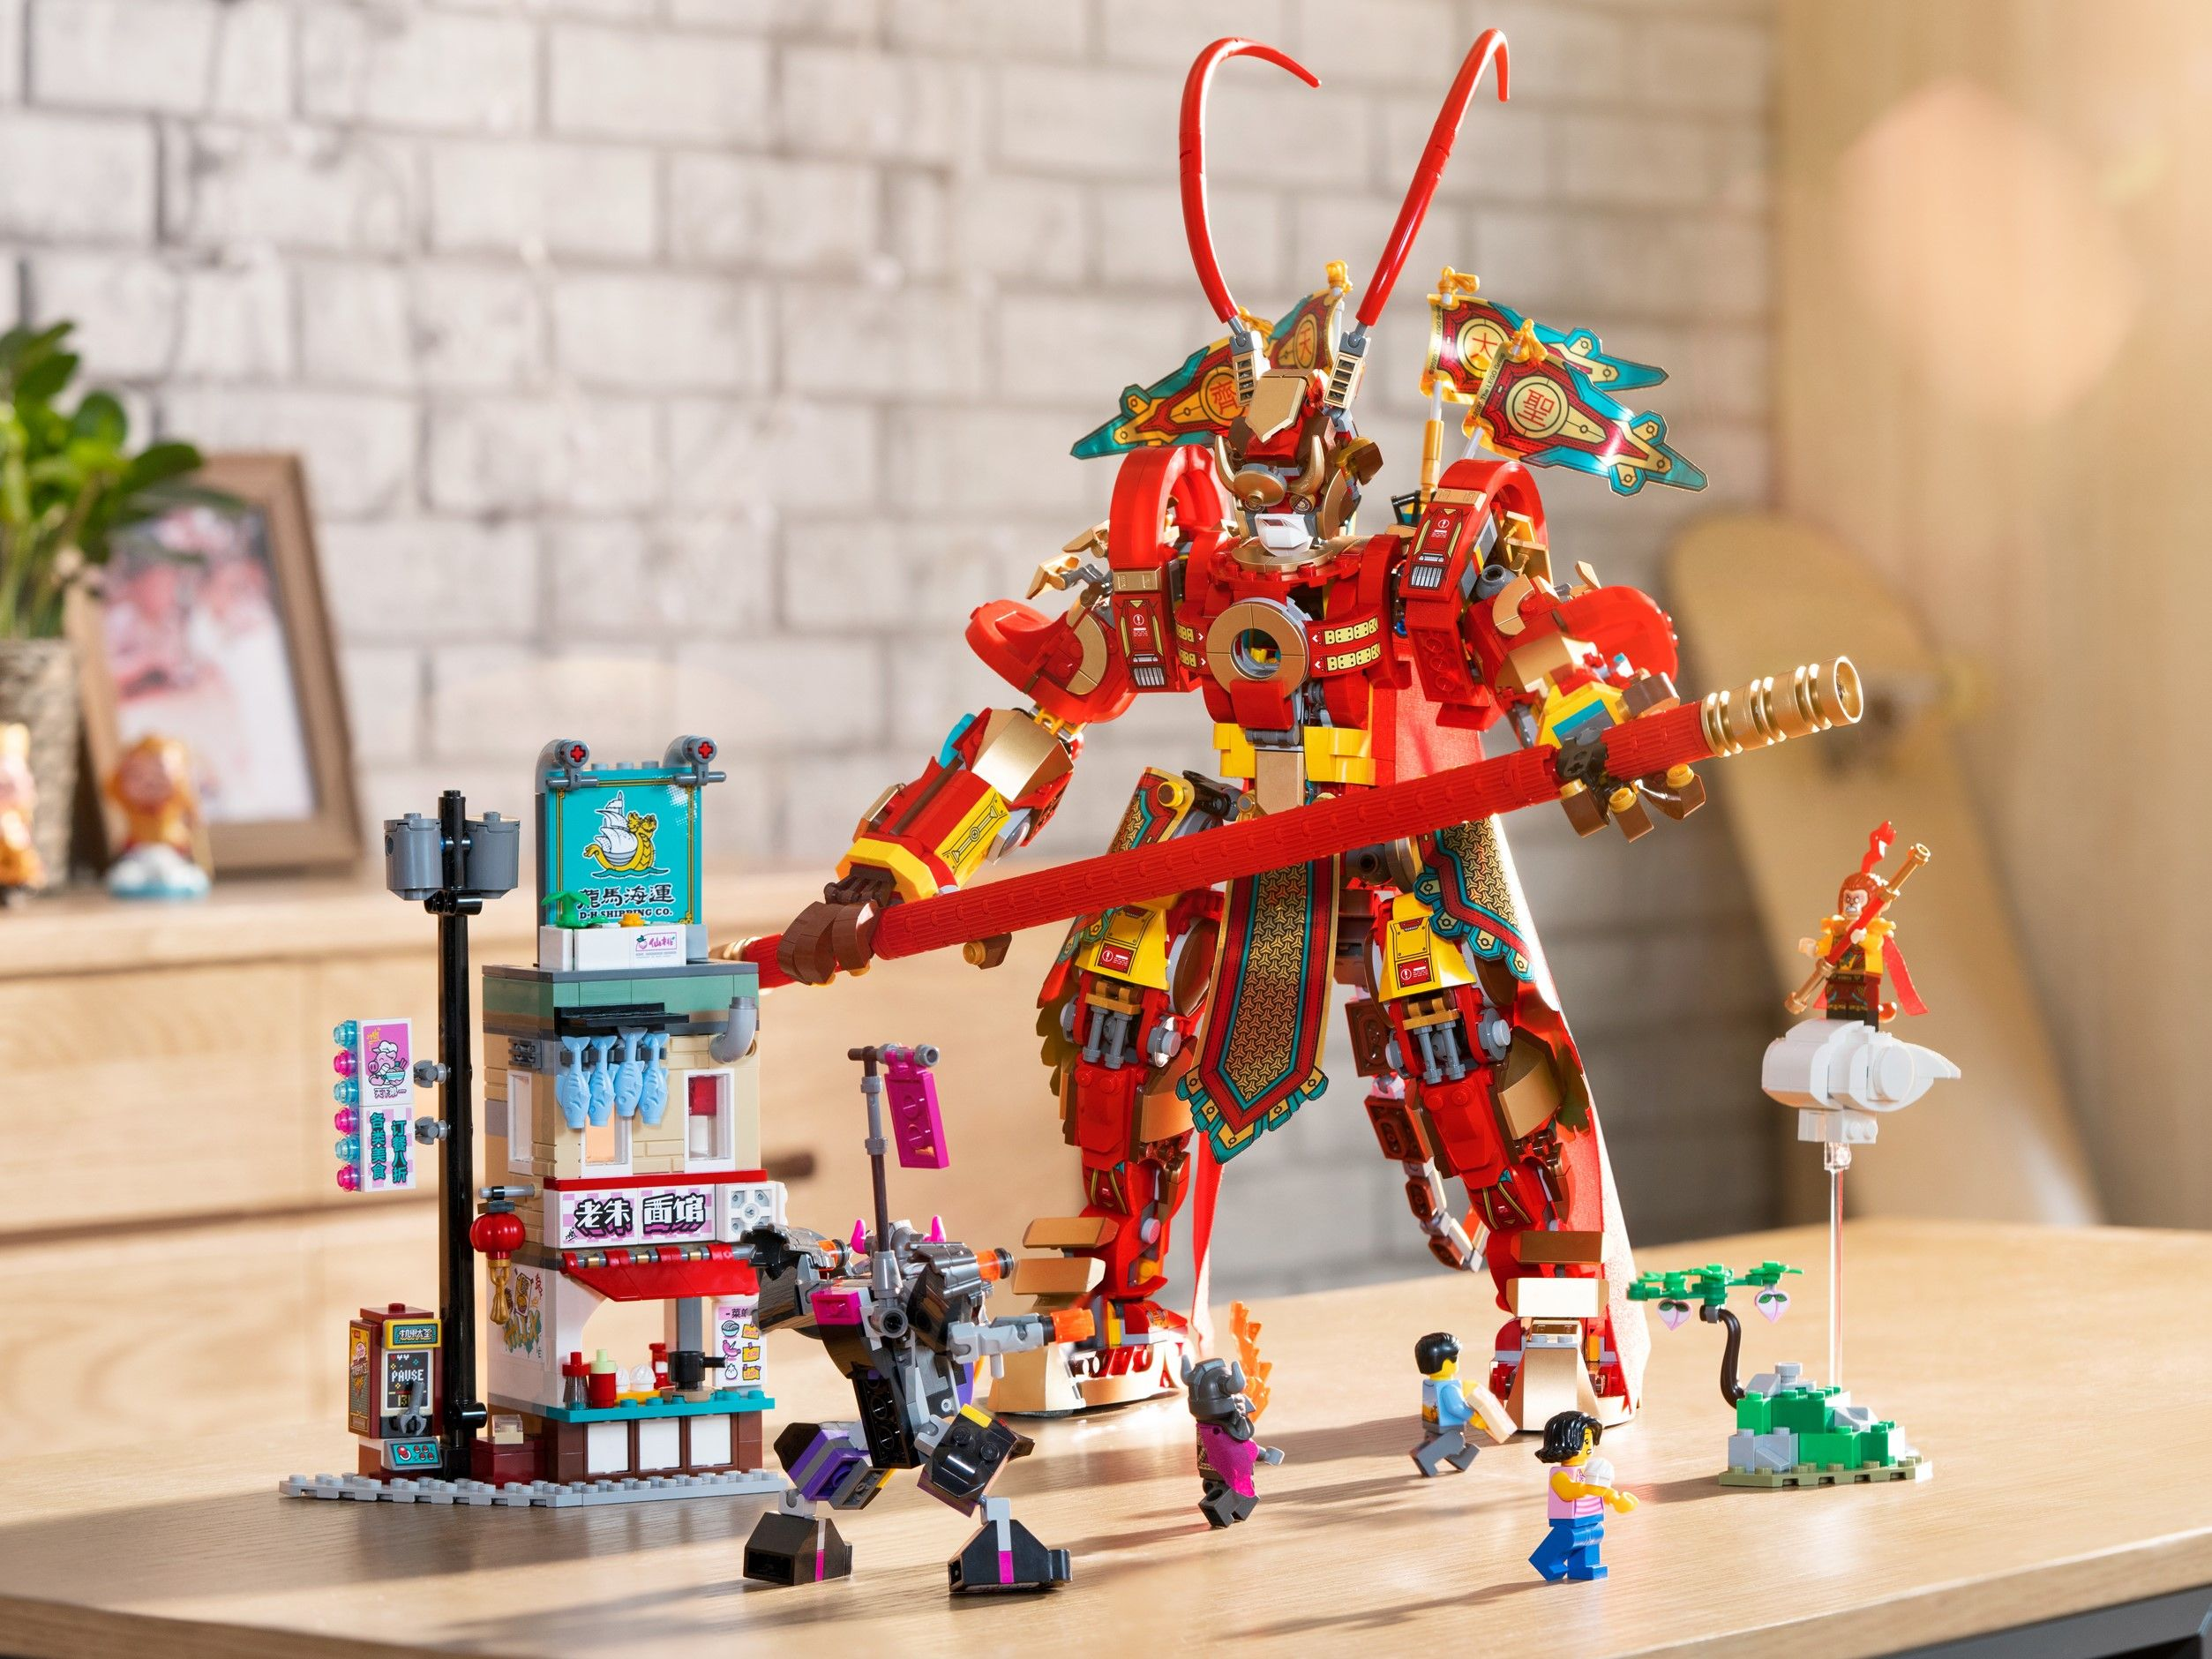 LEGO Monkie Kid 80012 Monkey King Mech LEGO_80012_alt13.jpg